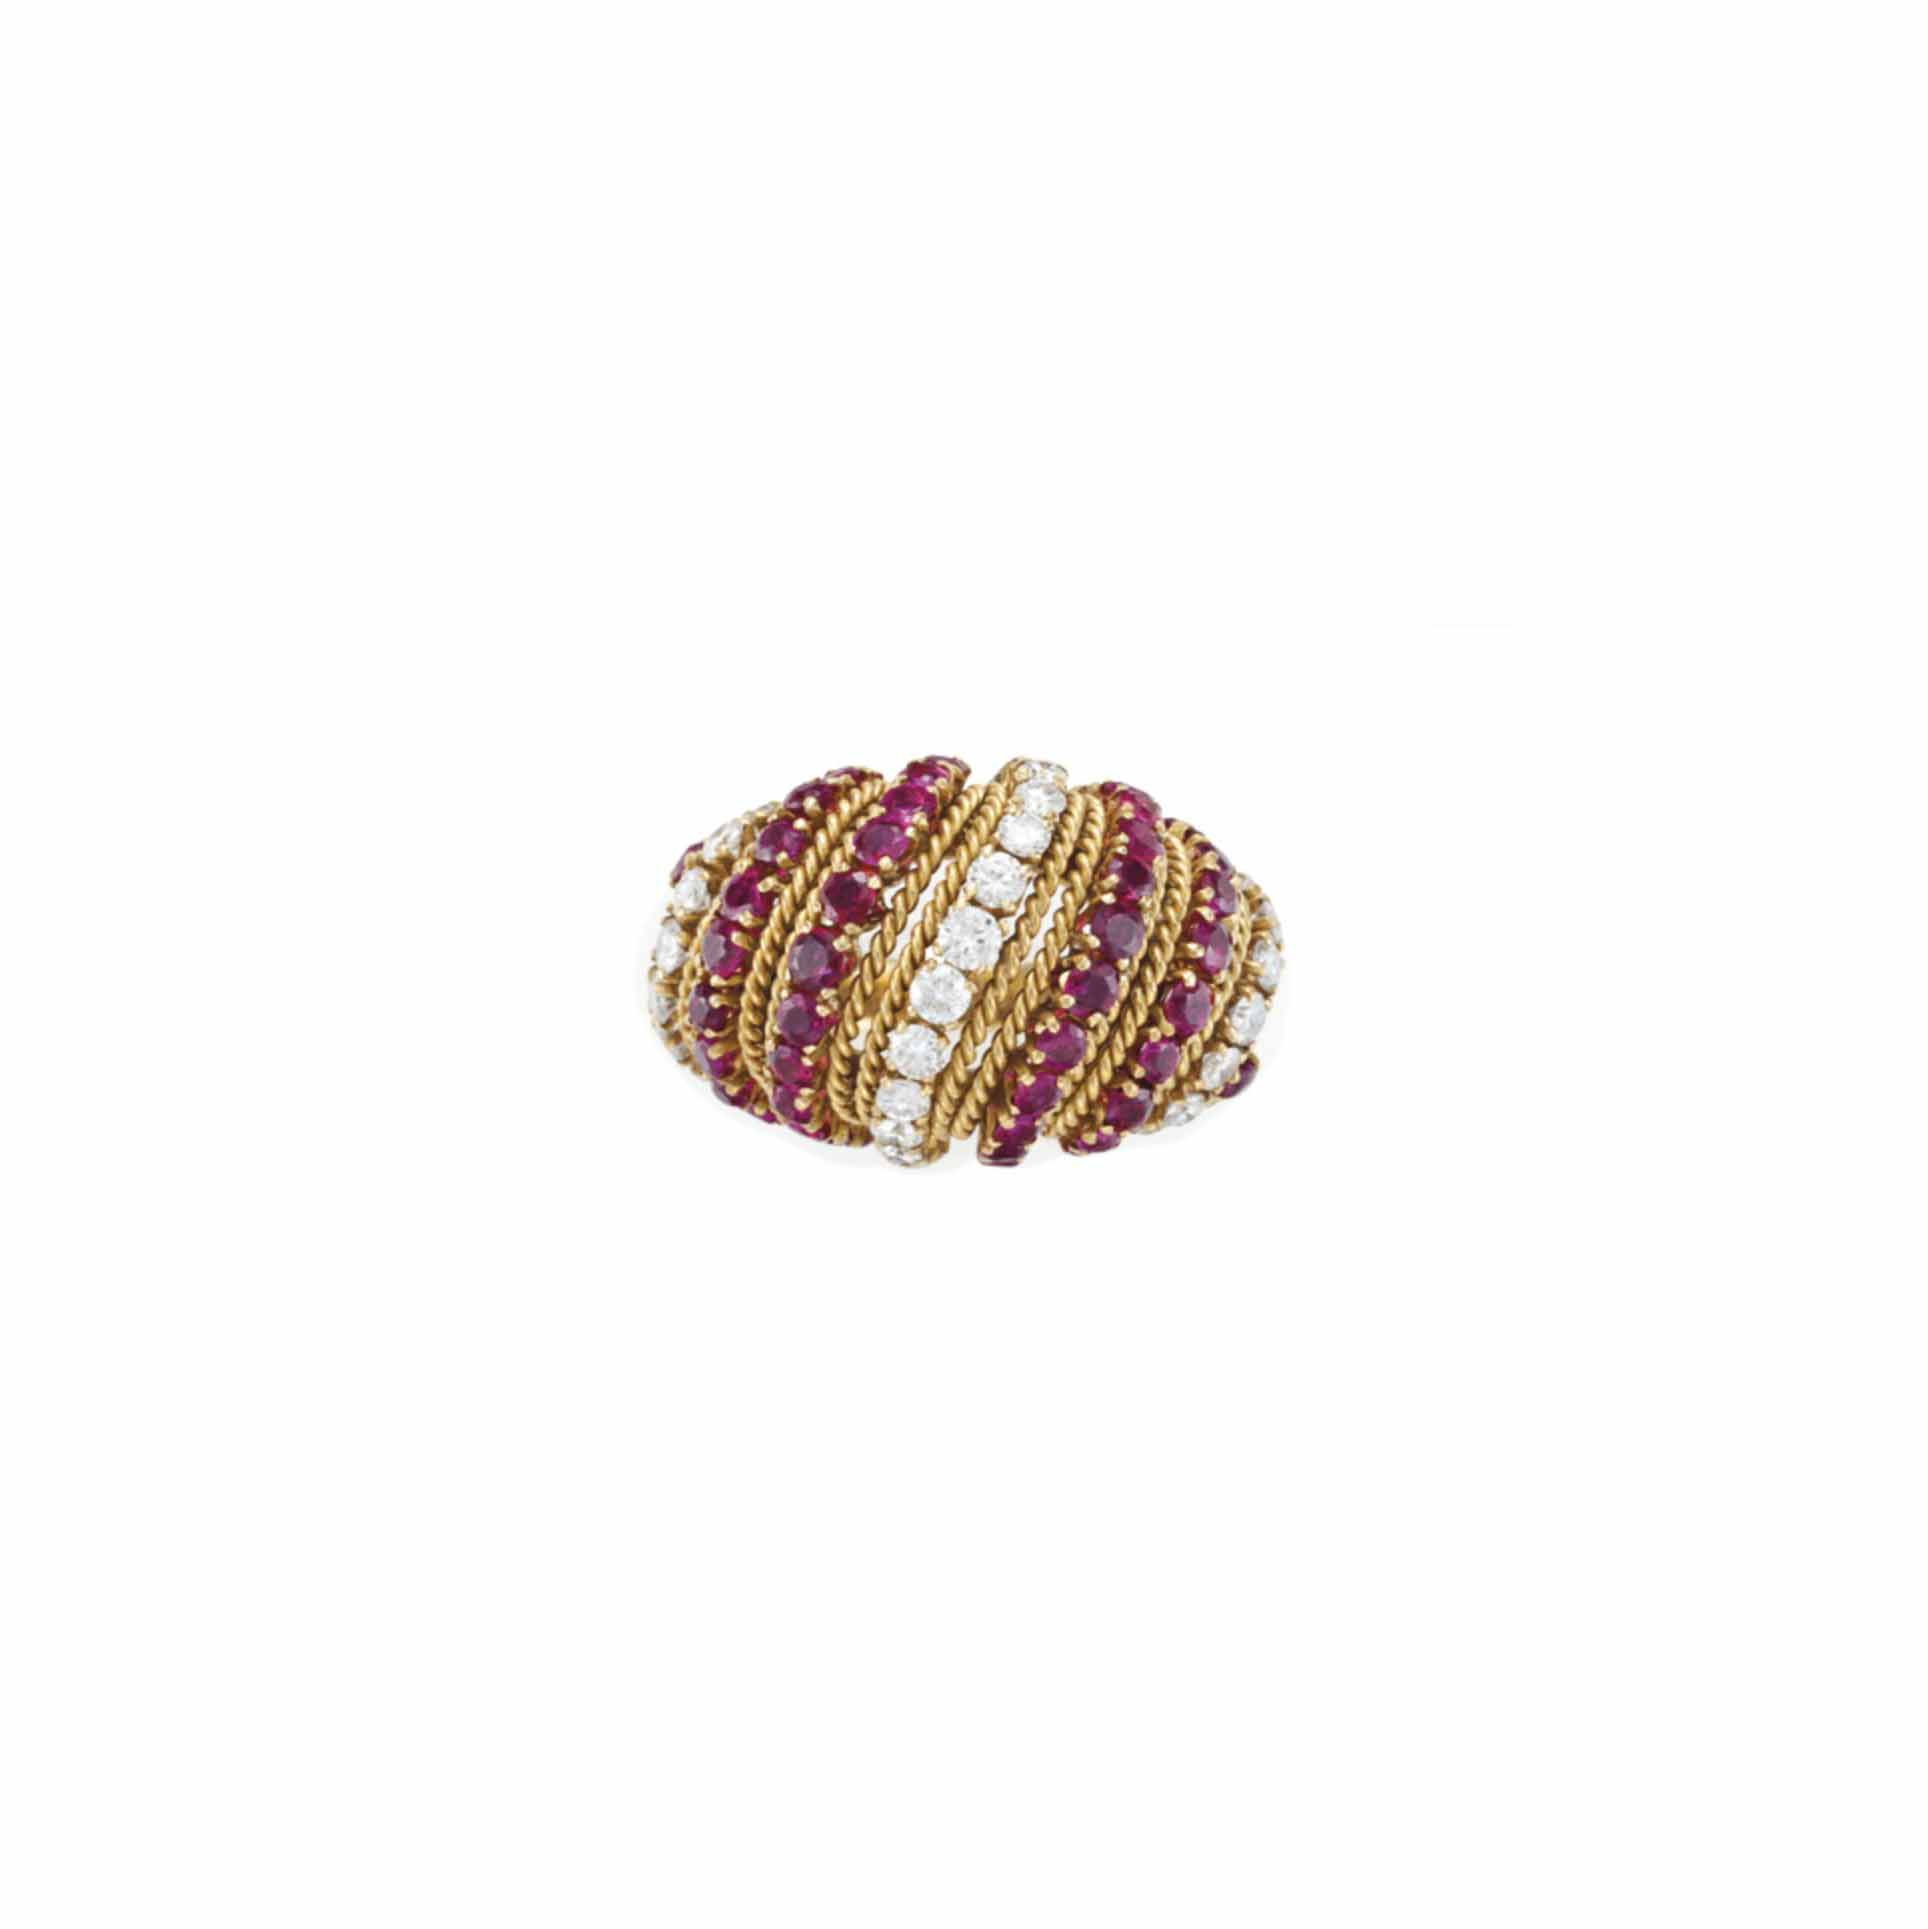 A RUBY, DIAMOND AND GOLD RING,